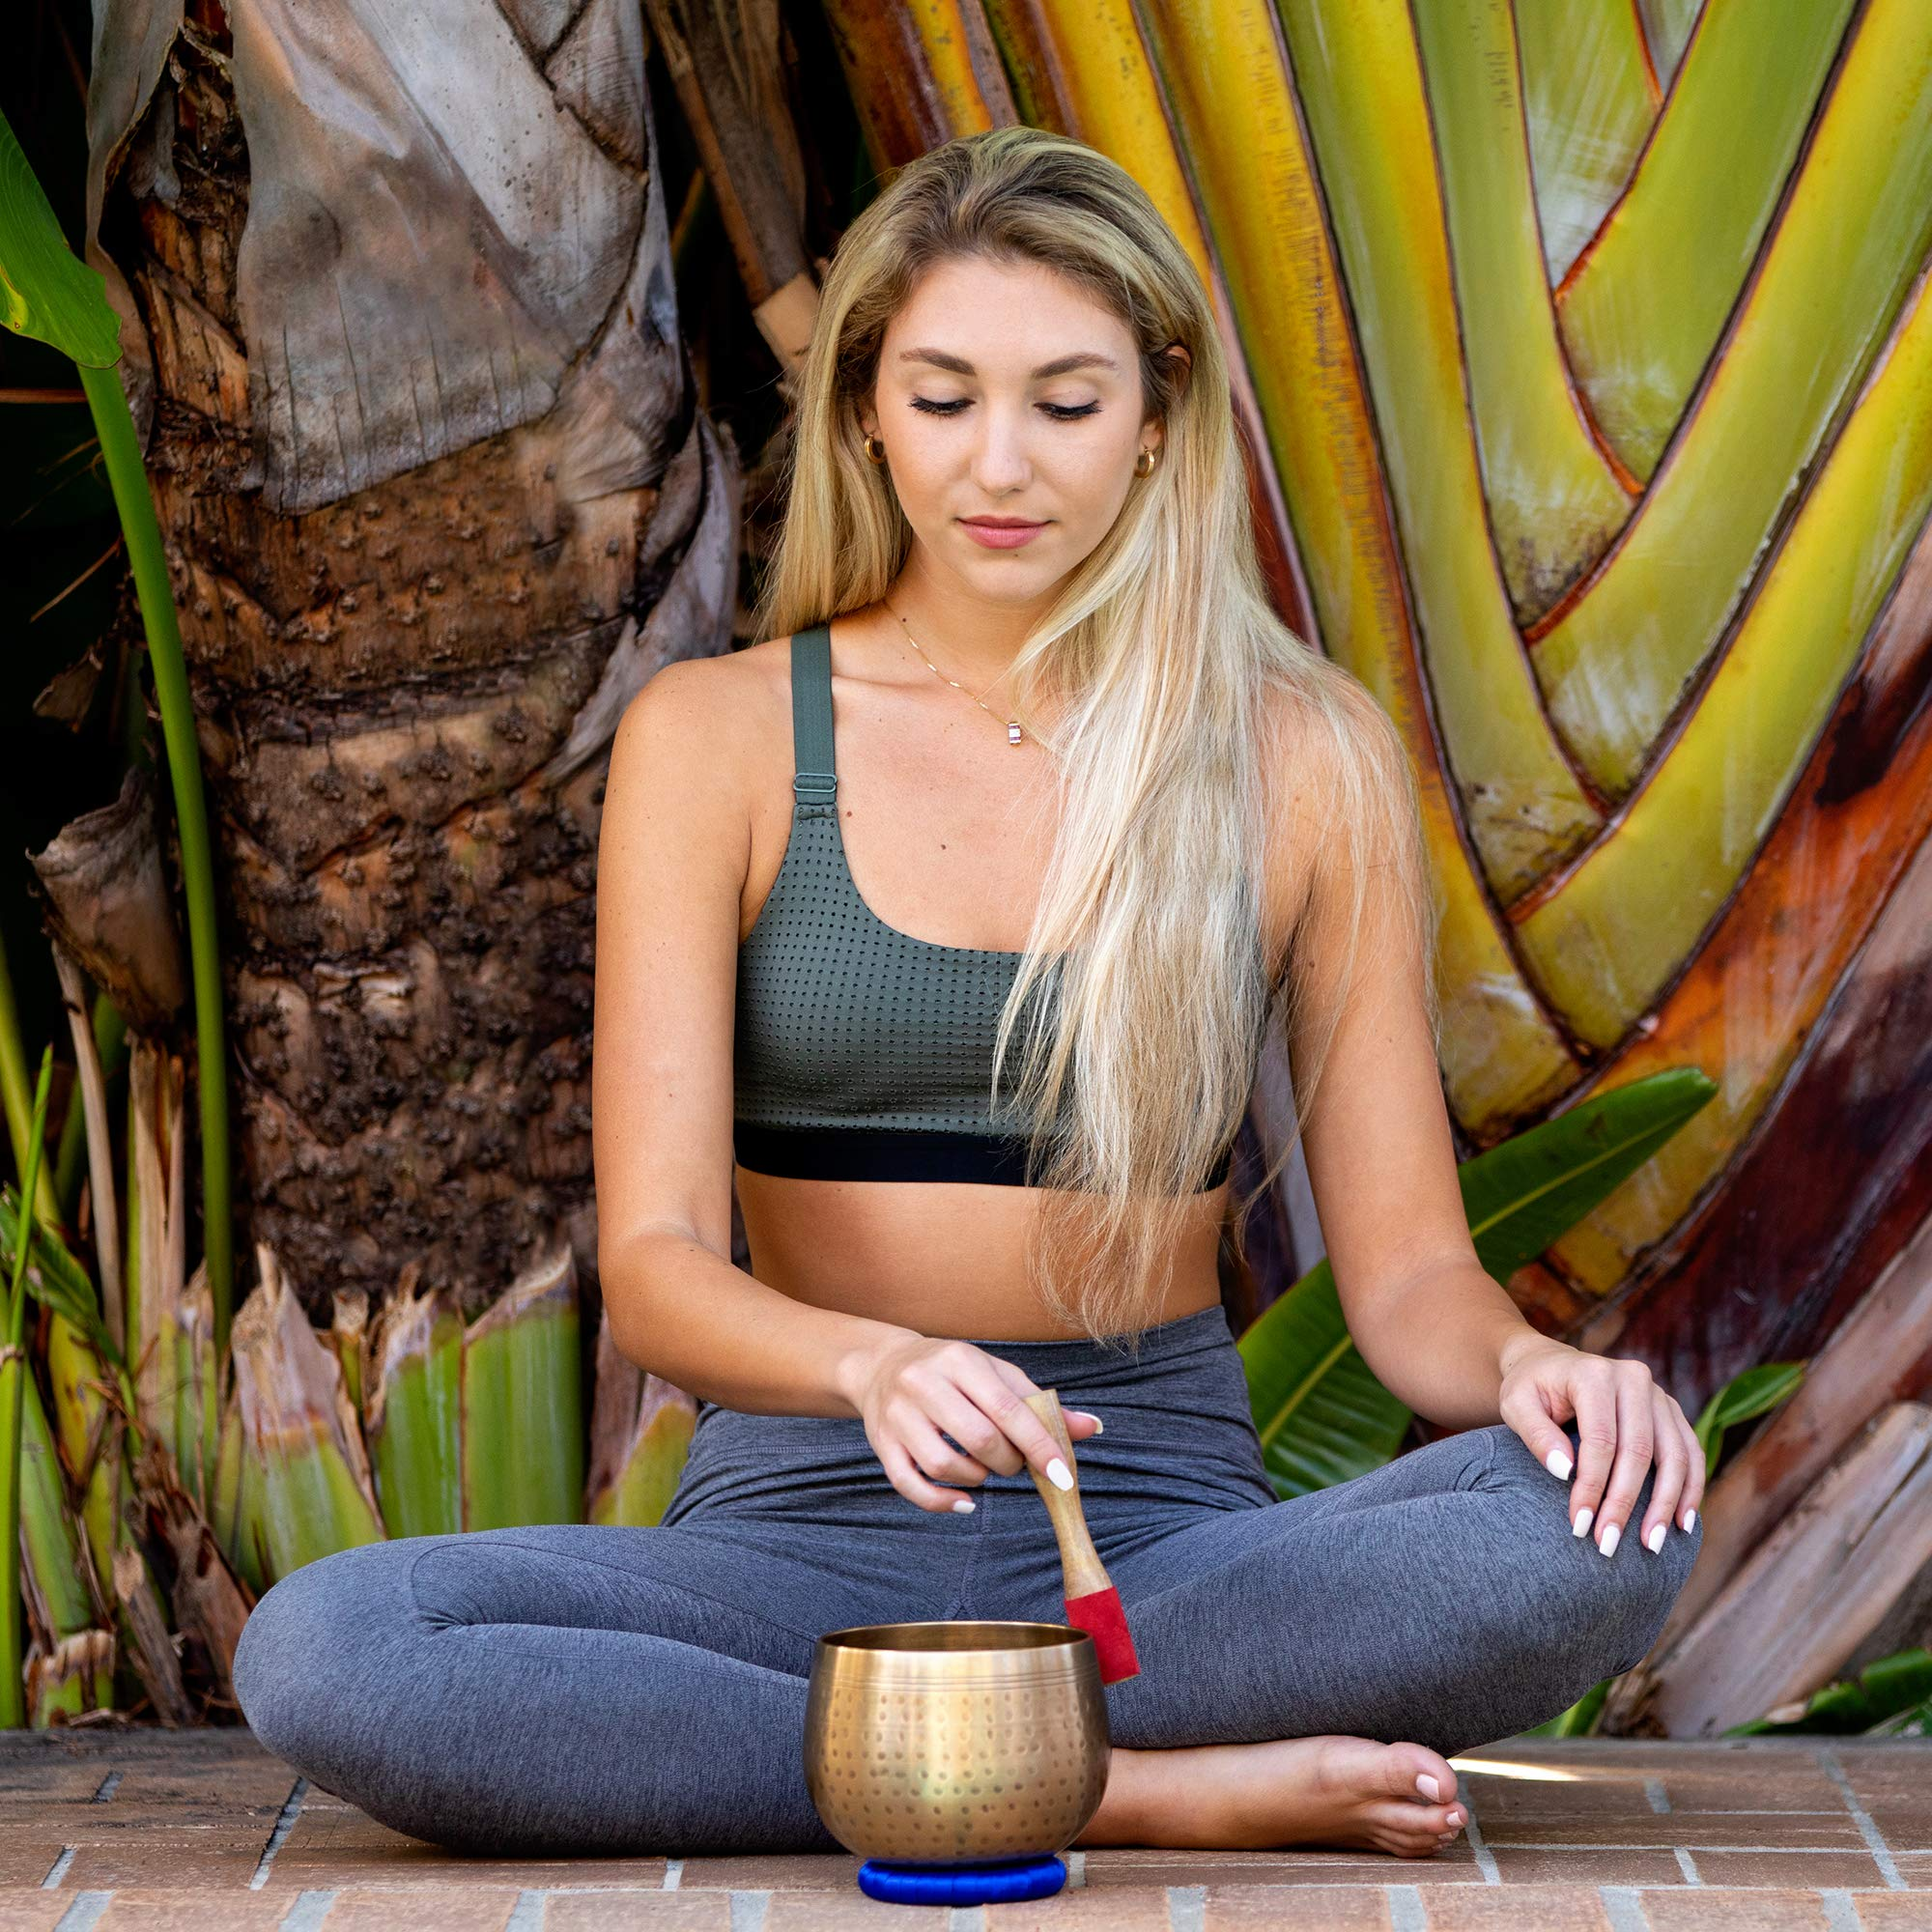 Meditative Brass Singing Bowl with Mallet and Cushion  -Tibetan Sound Bowls for Energy Healing, Mindfulness, Grounding, Zen, Meditation  -  Exquisite, Unique Home Decor and Gift Sets by Telsha (Image #5)